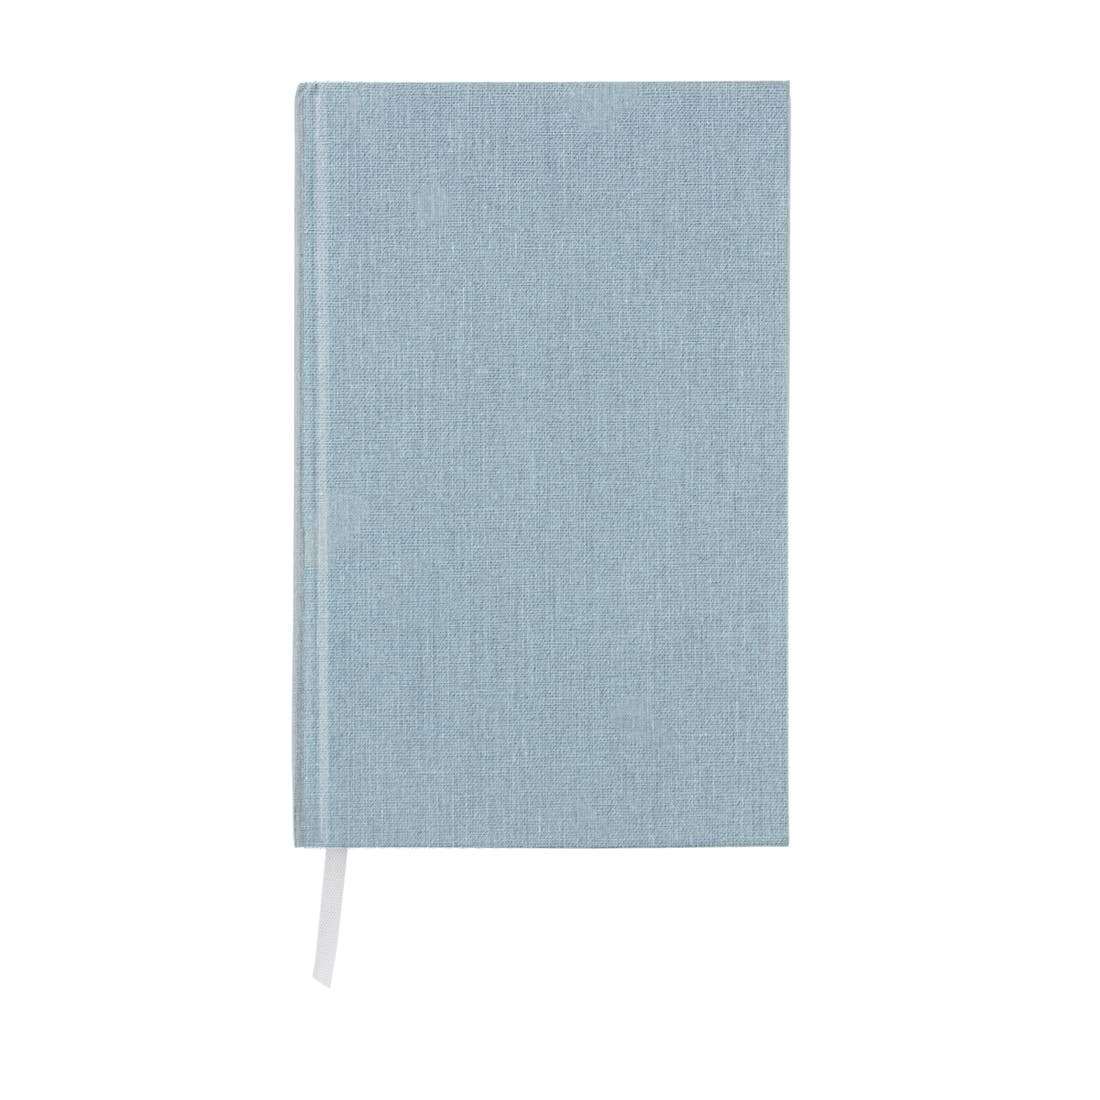 Appointed Undated Year Task Book - Chambray Blue